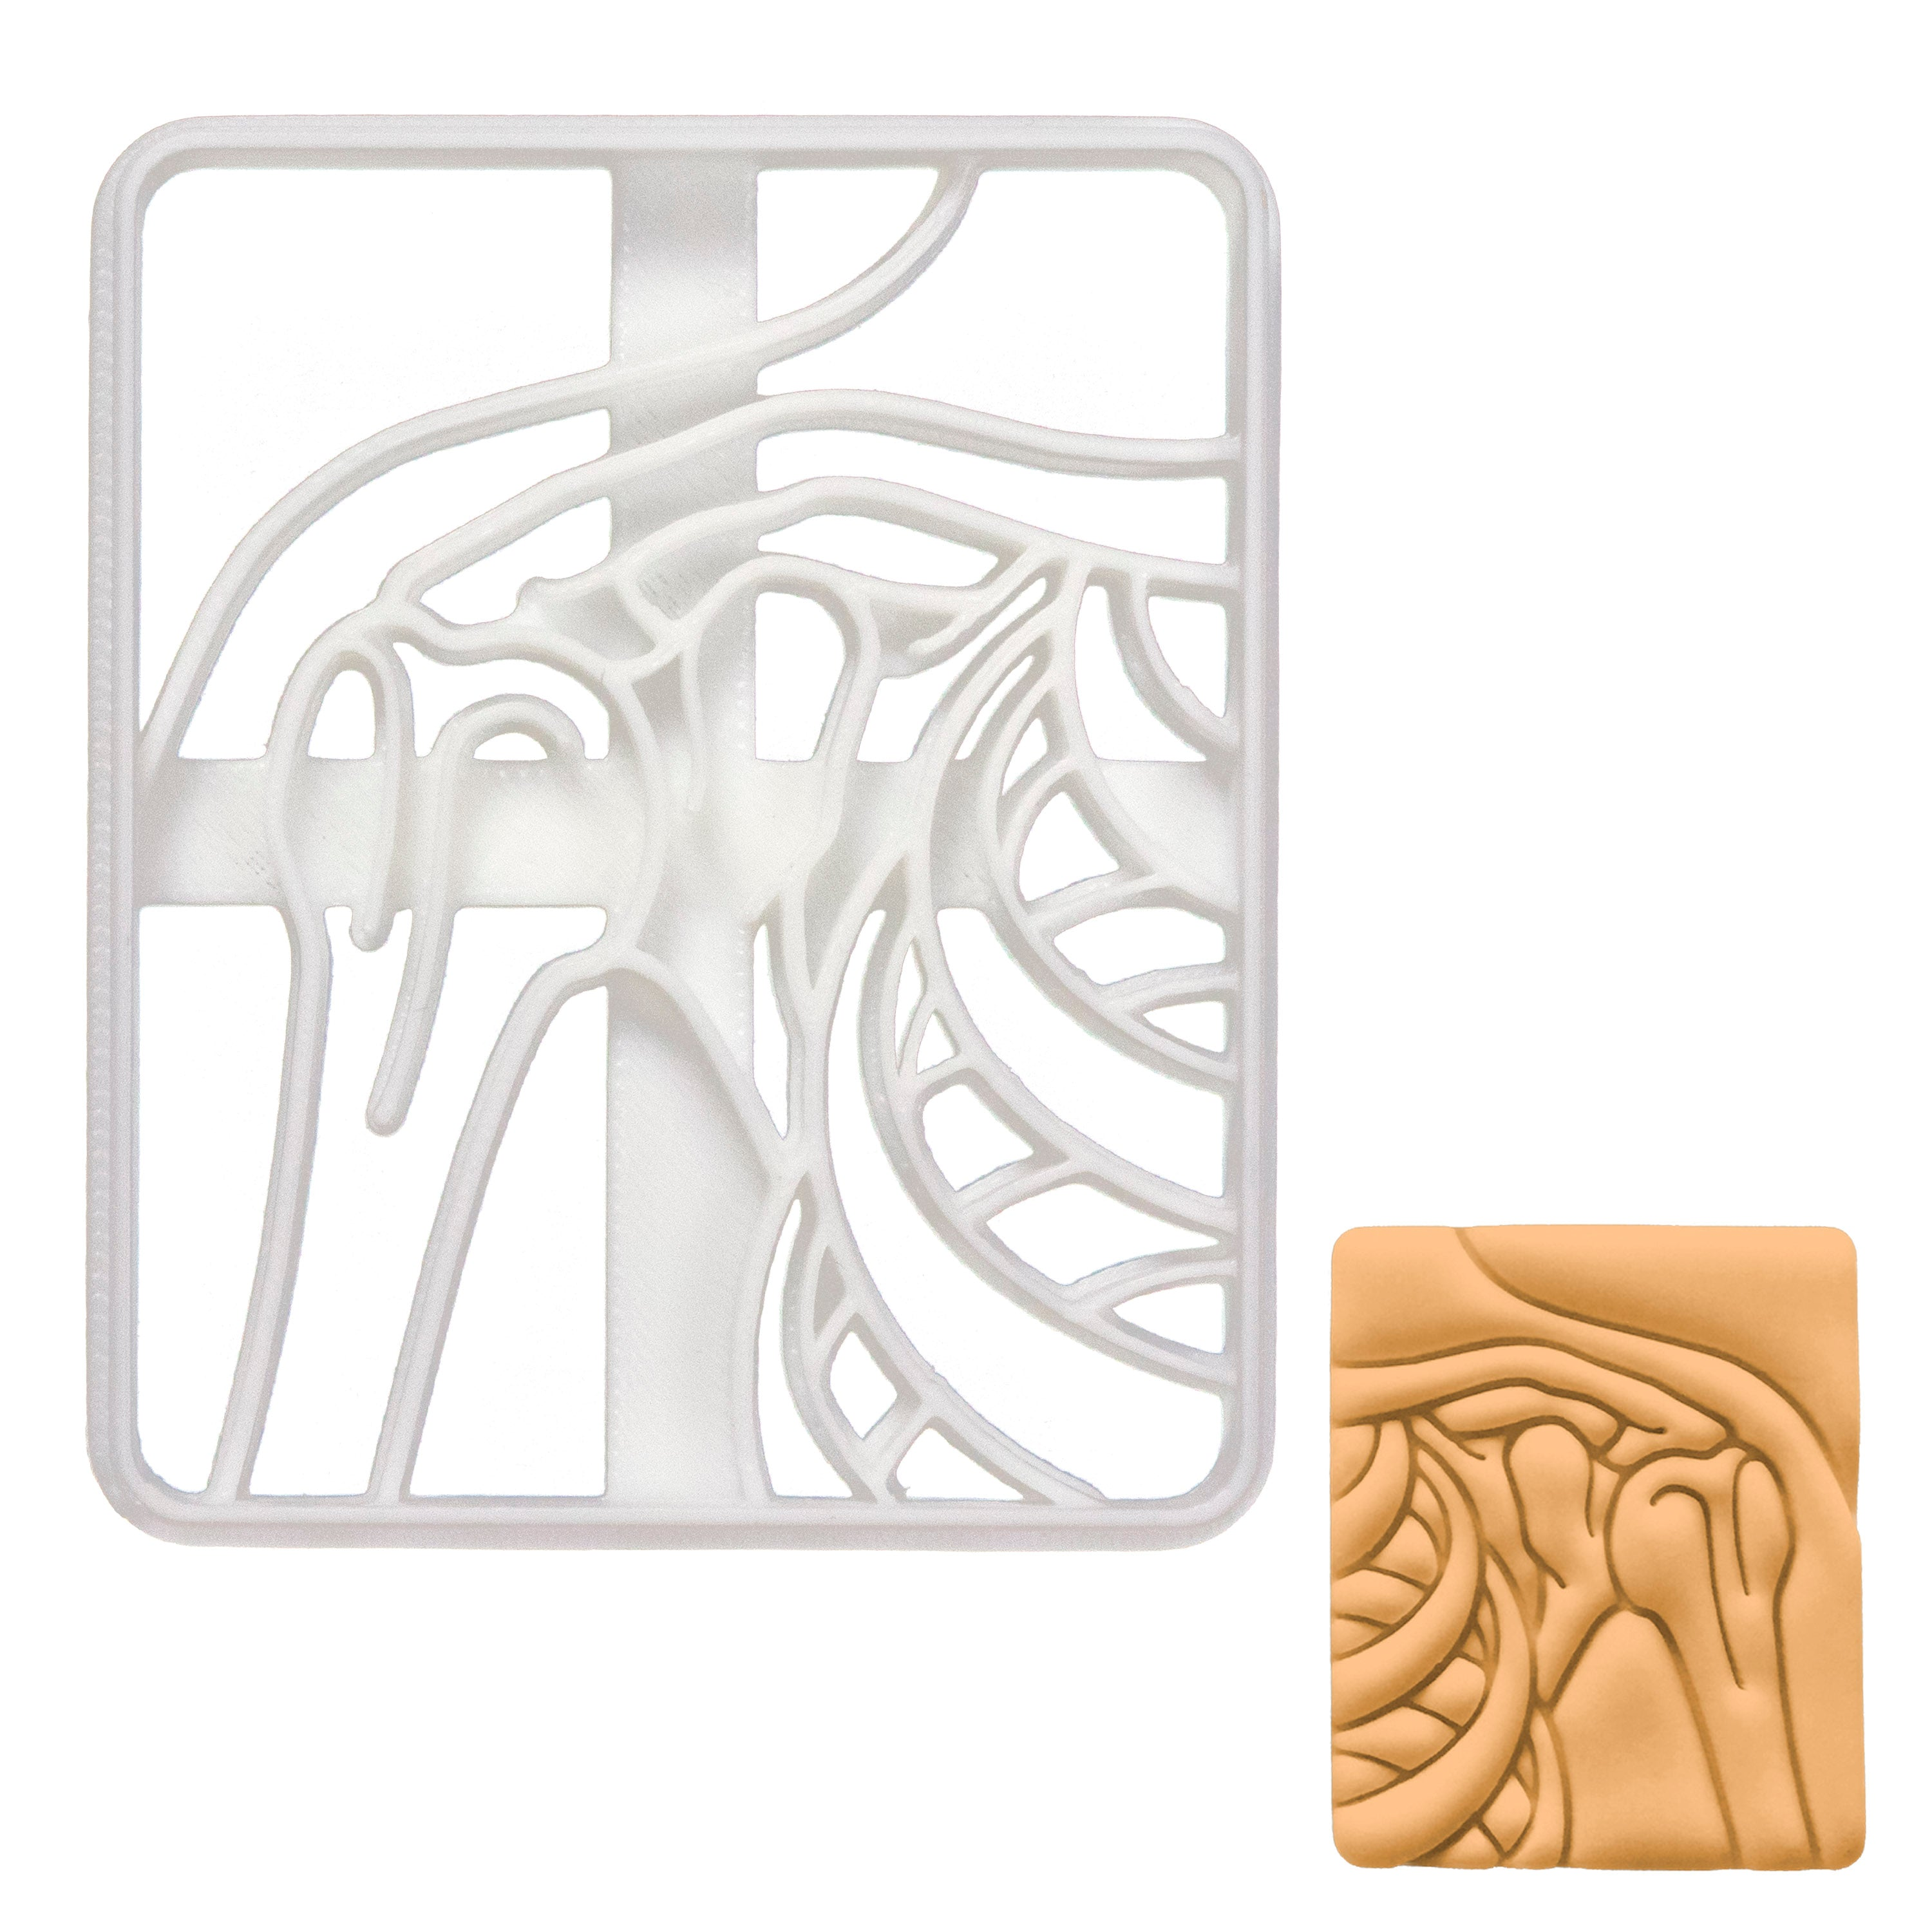 Shoulder x-ray cookie cutter